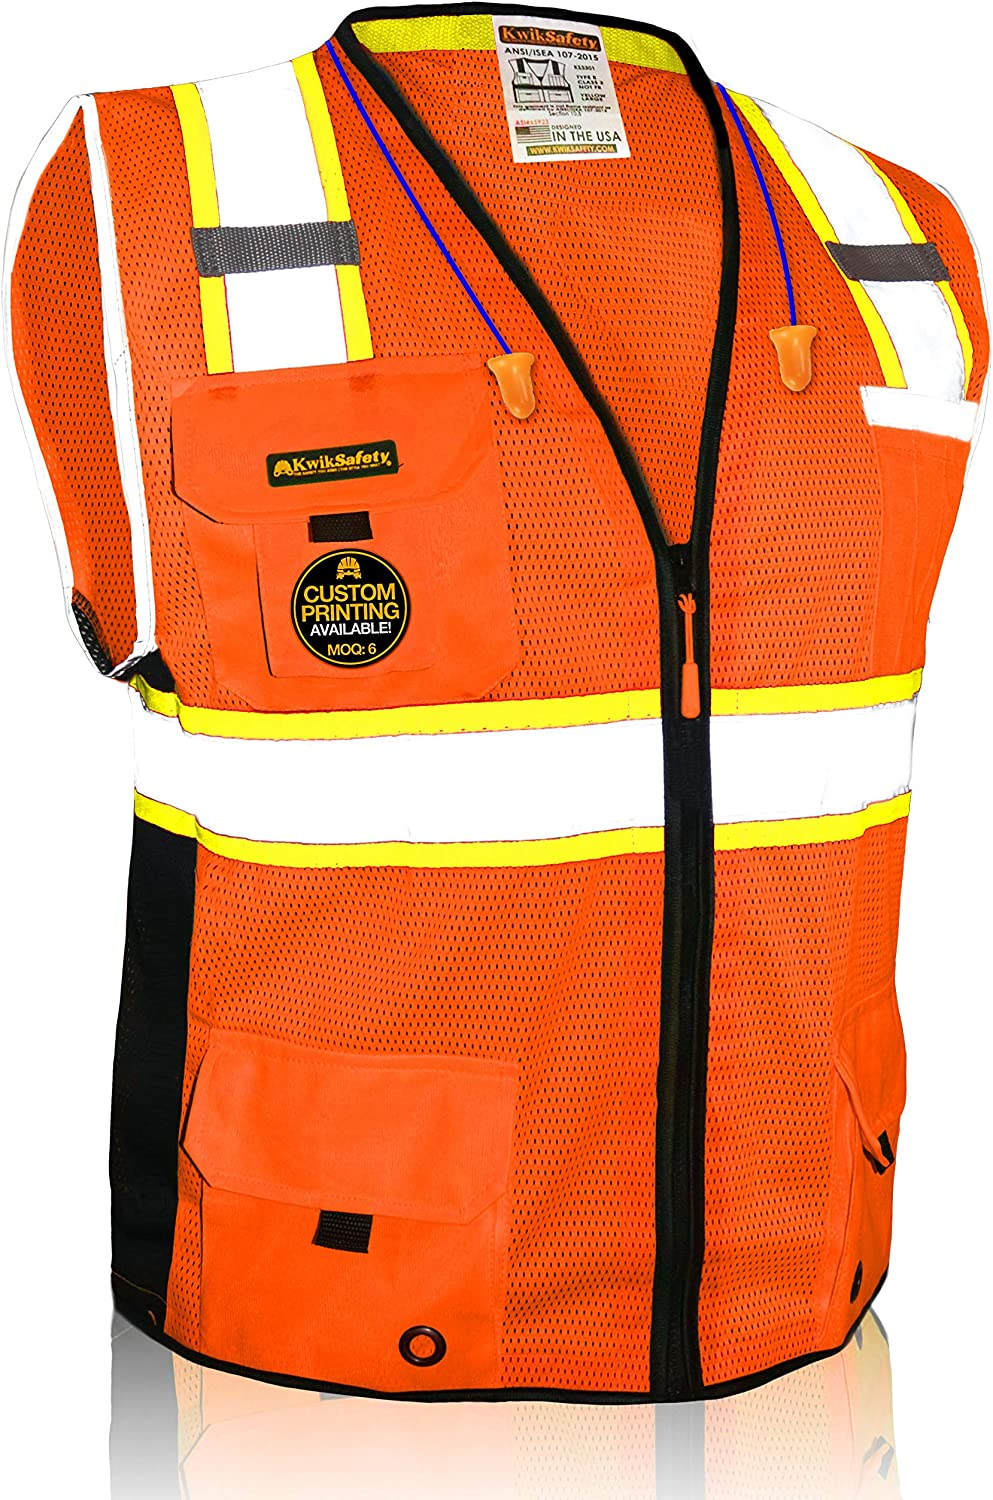 Small Product Image of KwikSafety BIG KAHUNA Class 2 Reflection Protection Vest